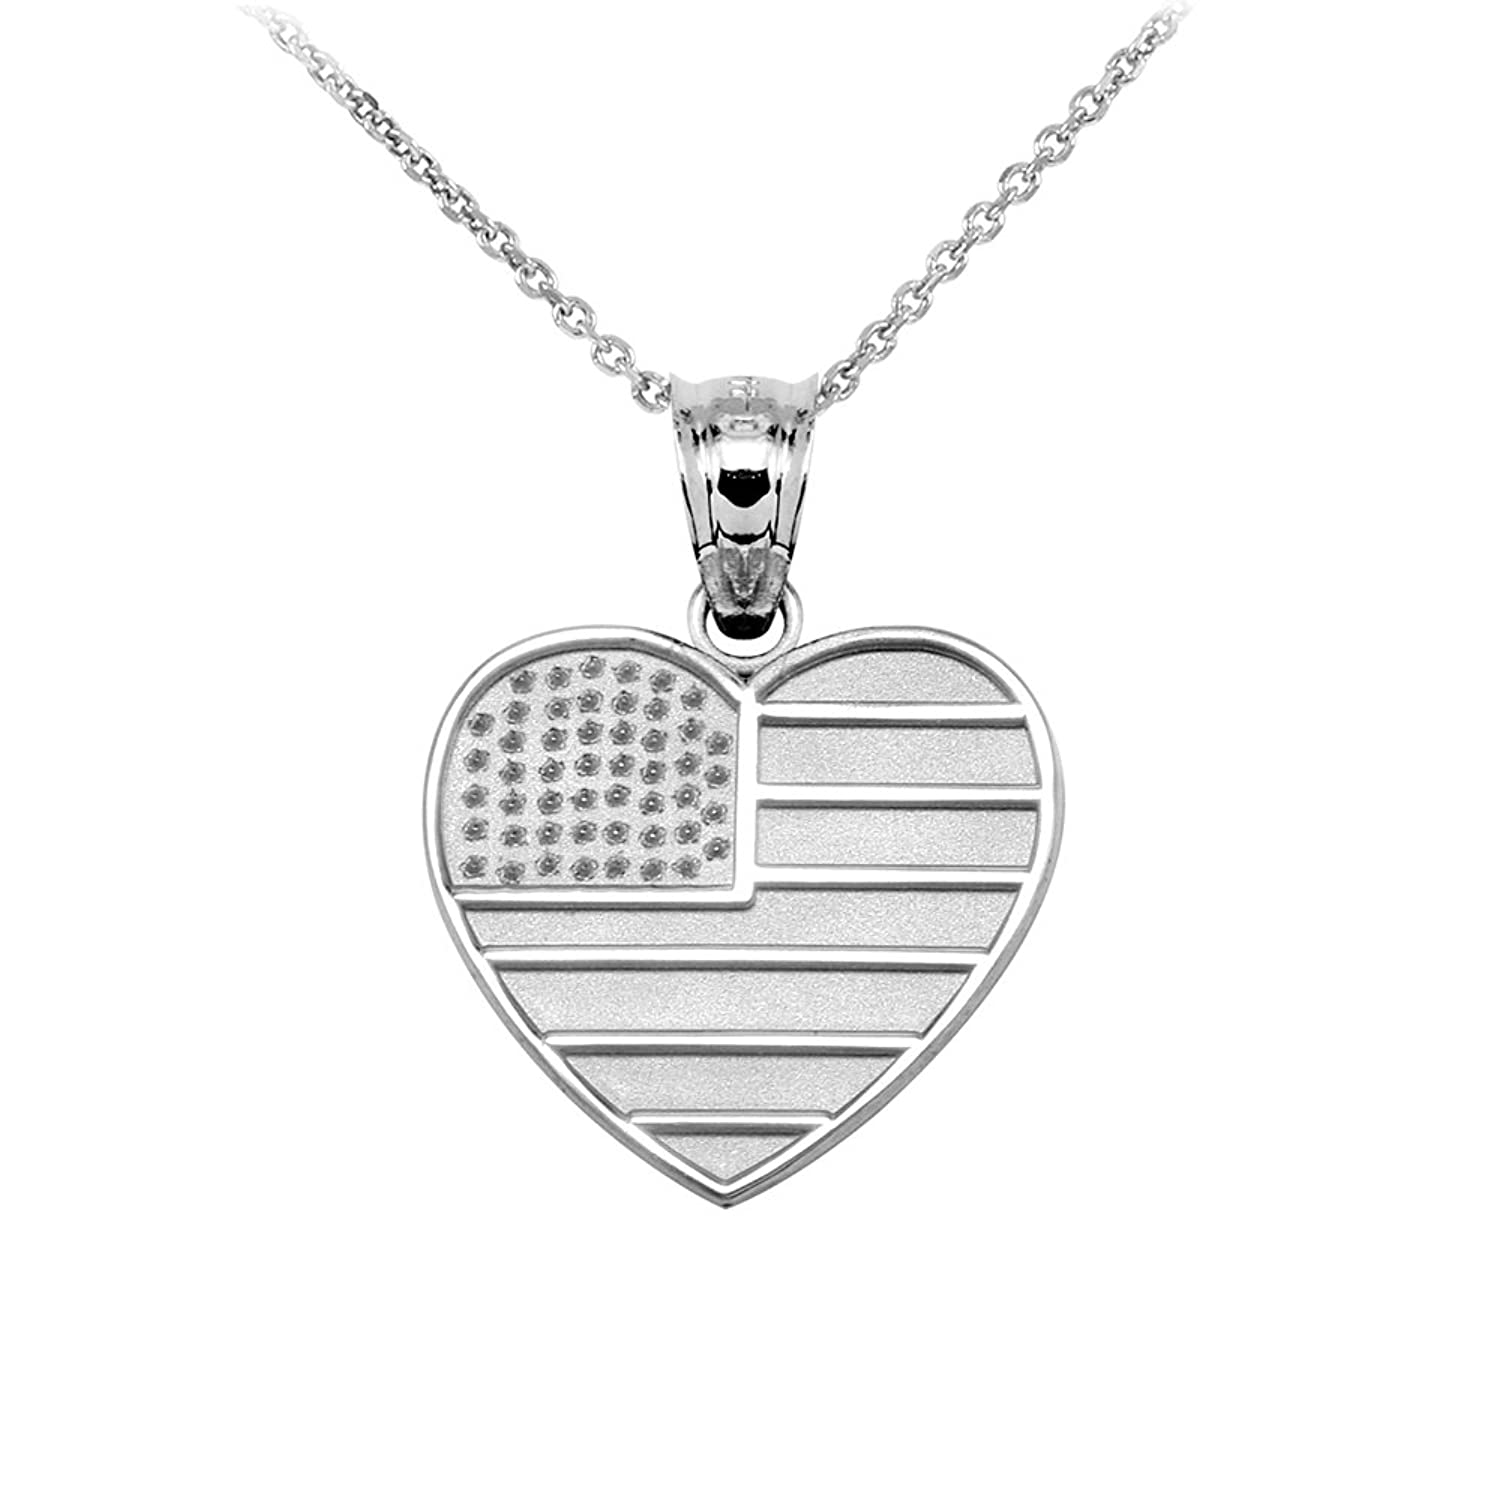 heart badge police dp american flag us sterling shaped silver jewelry necklace com amazon pendant